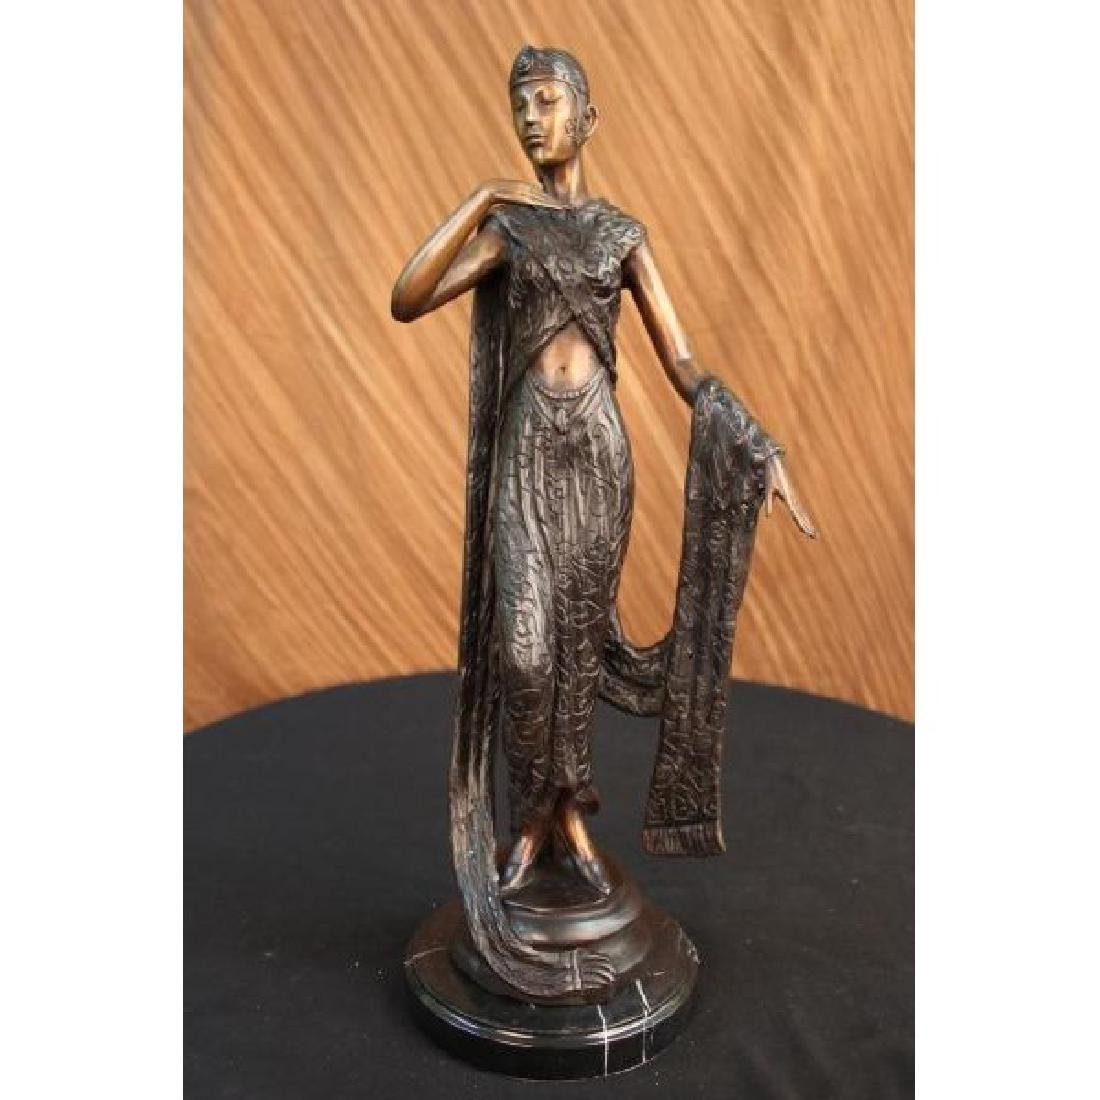 Art Deco Ribbon Dancer Bronze Sculpture Marble Base